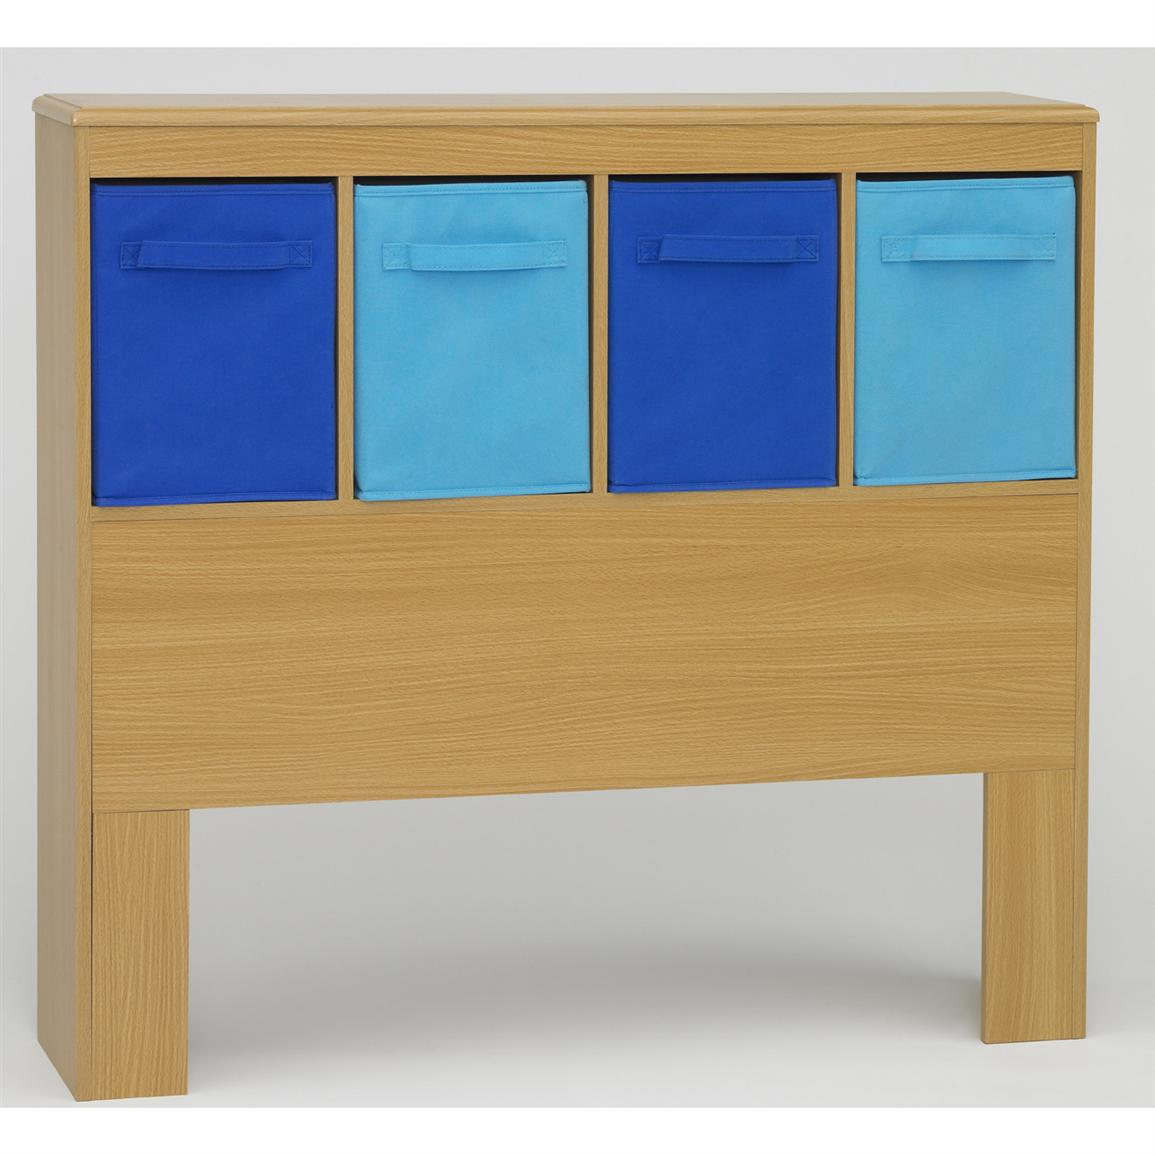 4-D Concepts Boys' Headboard